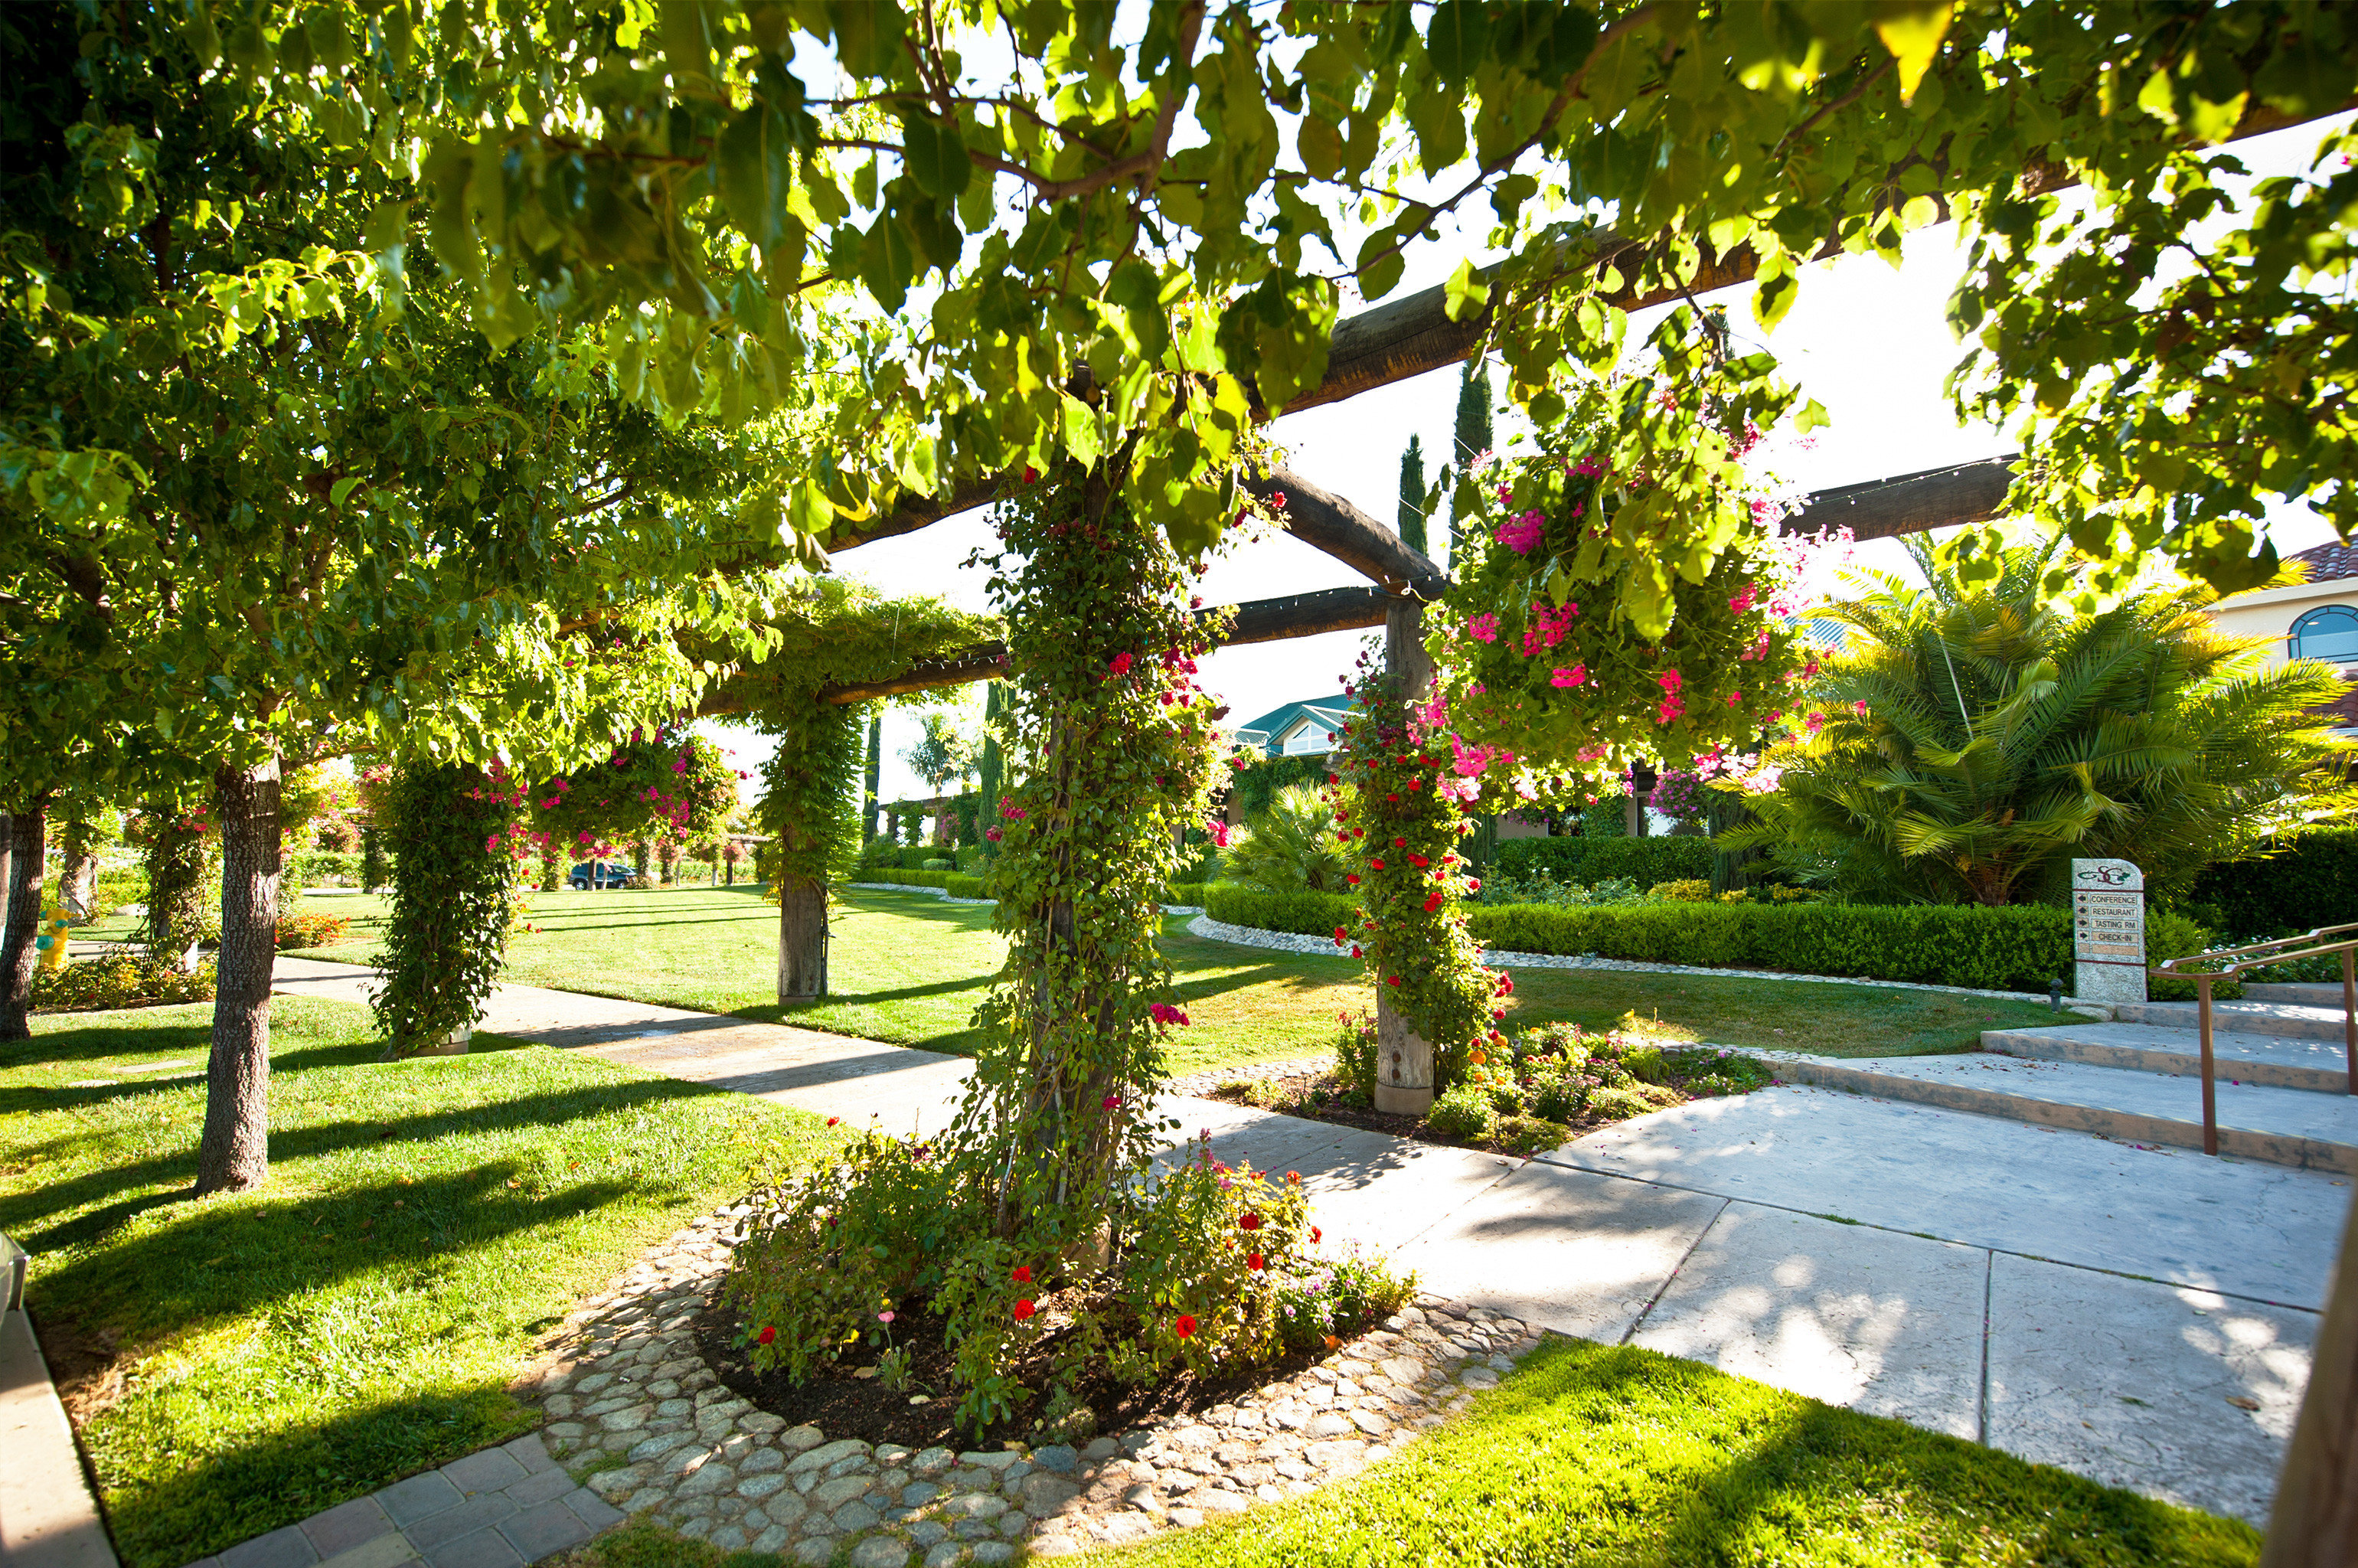 Boutique Country Grounds Romantic Winery tree grass Garden botany plant flower yard woody plant park backyard landscape architect home botanical garden lawn shrub Courtyard autumn landscaping surrounded